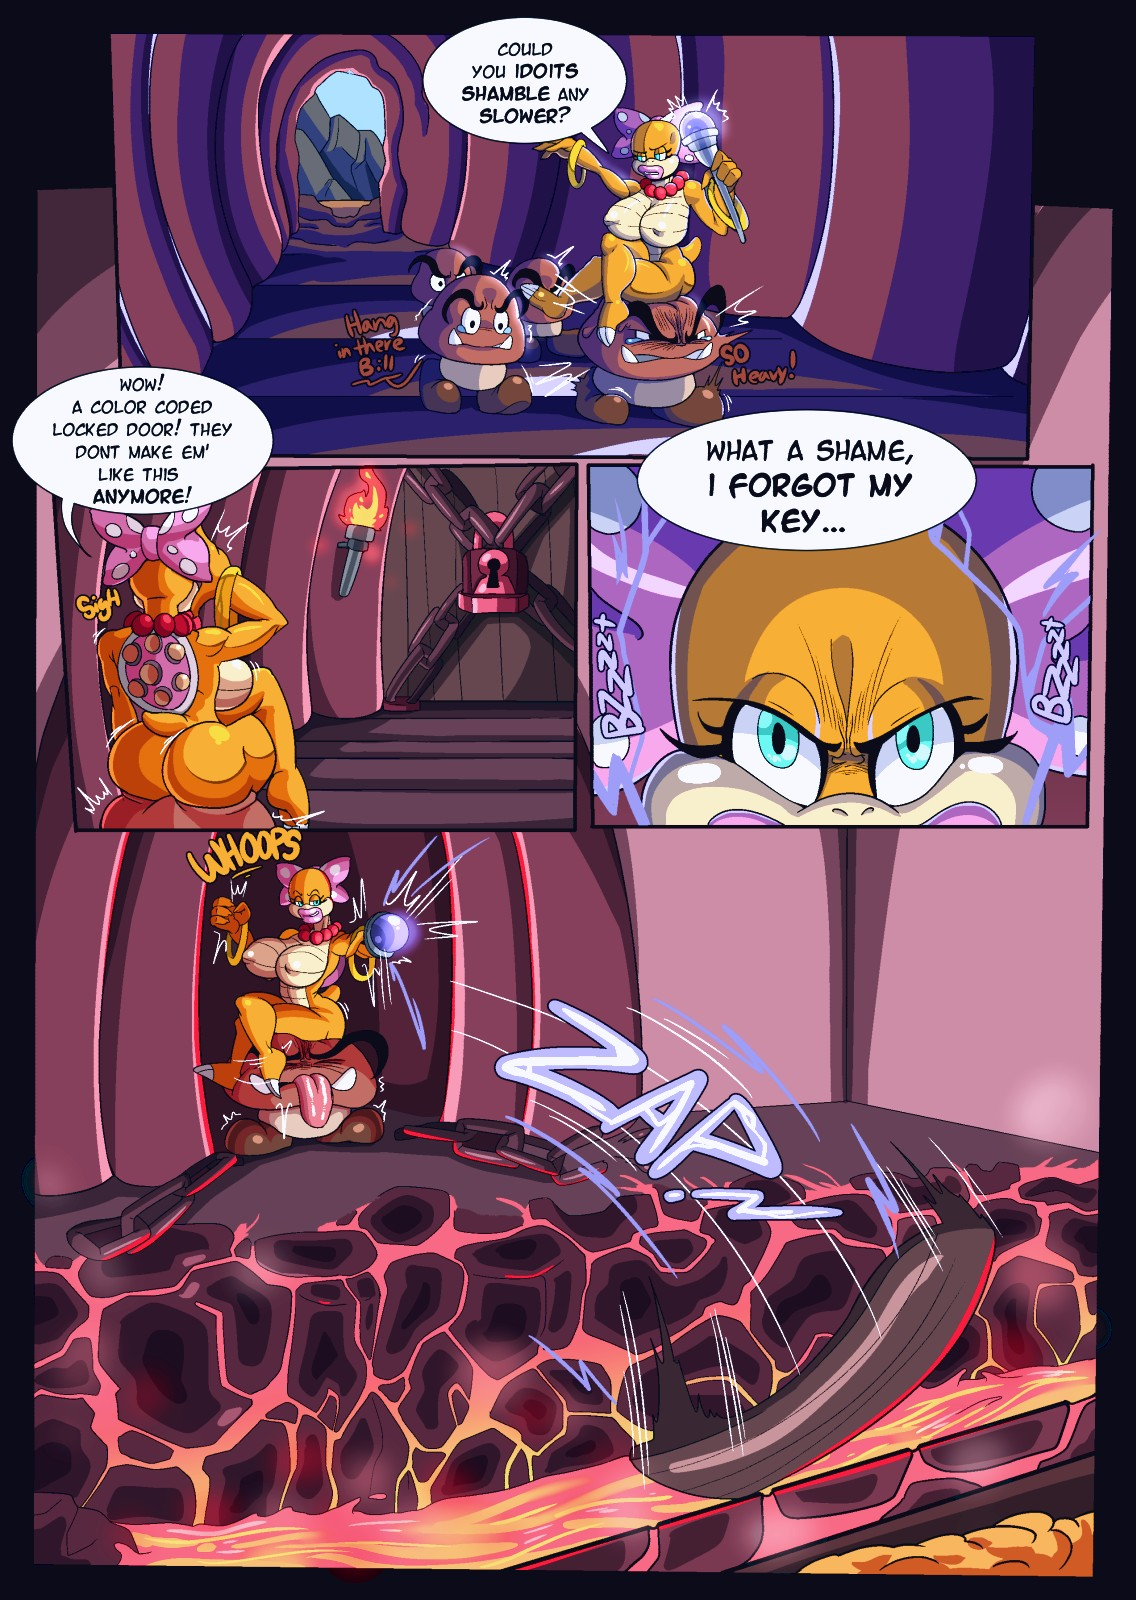 Quest for Power page 09